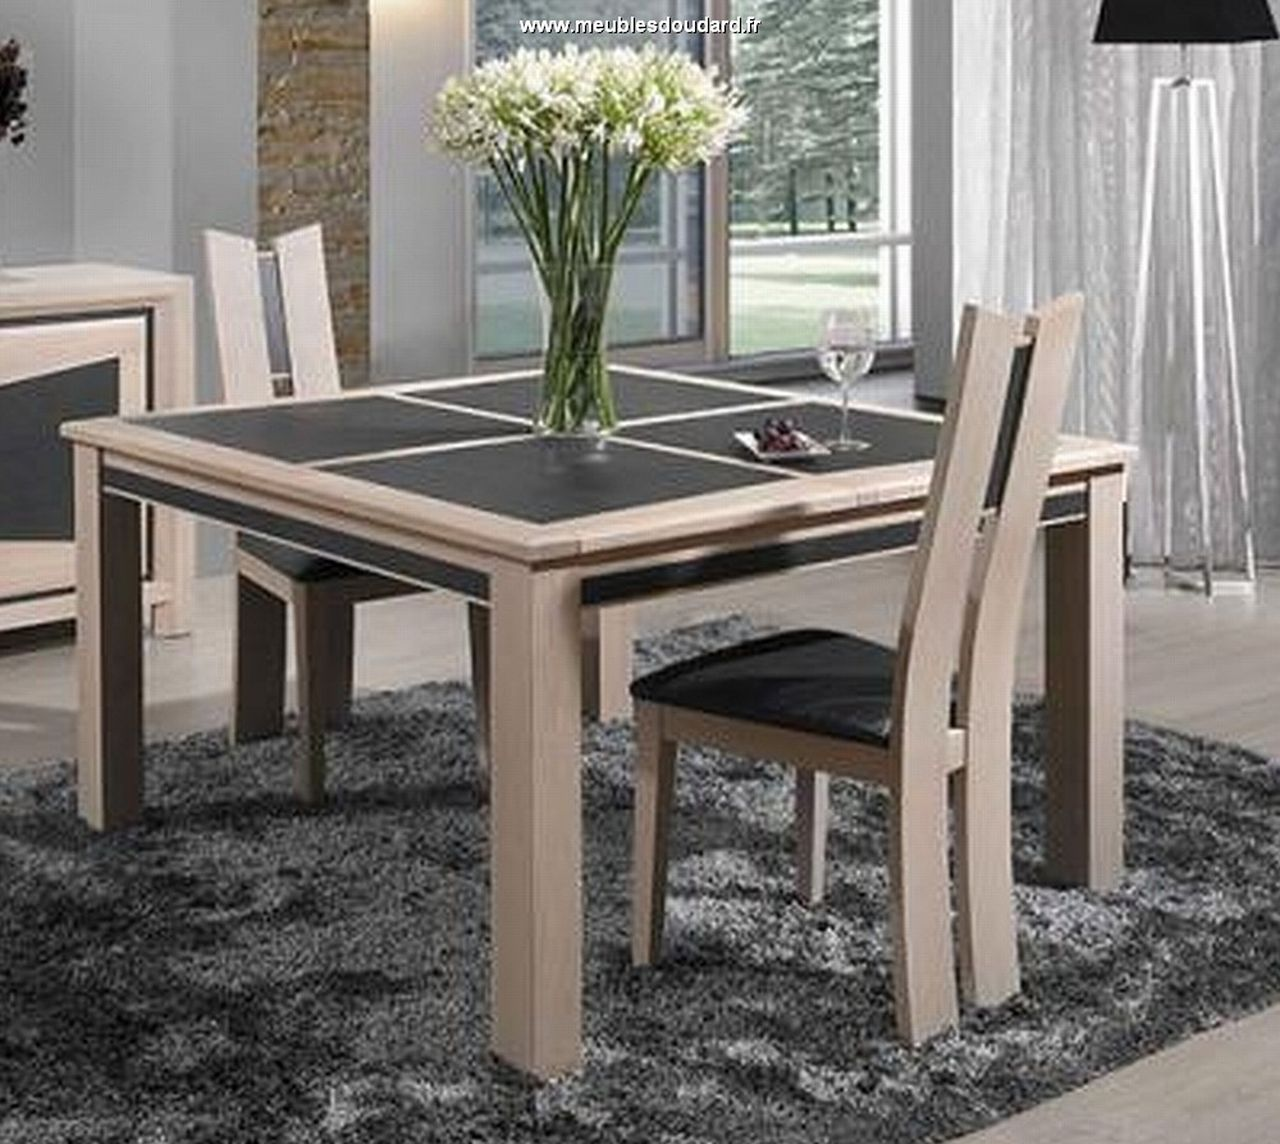 Table carree 8 personnes avec rallonge 28 images table for Table carree avec rallonge